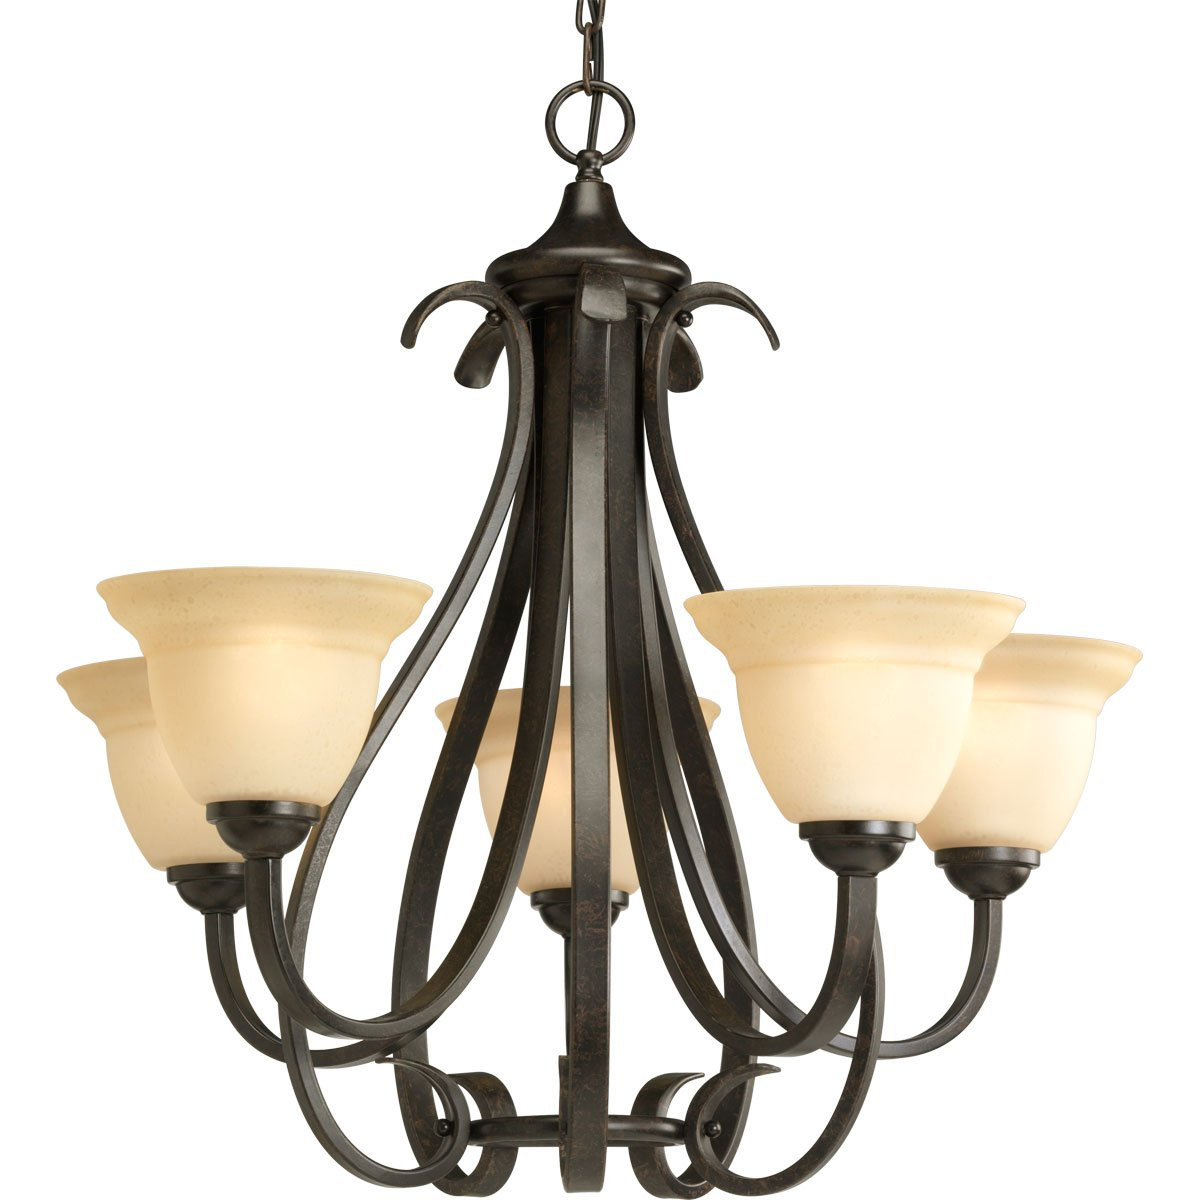 Progress Lighting P4416-77 5-Light Torino Chandelier, Forged Bronze by Progress Lighting